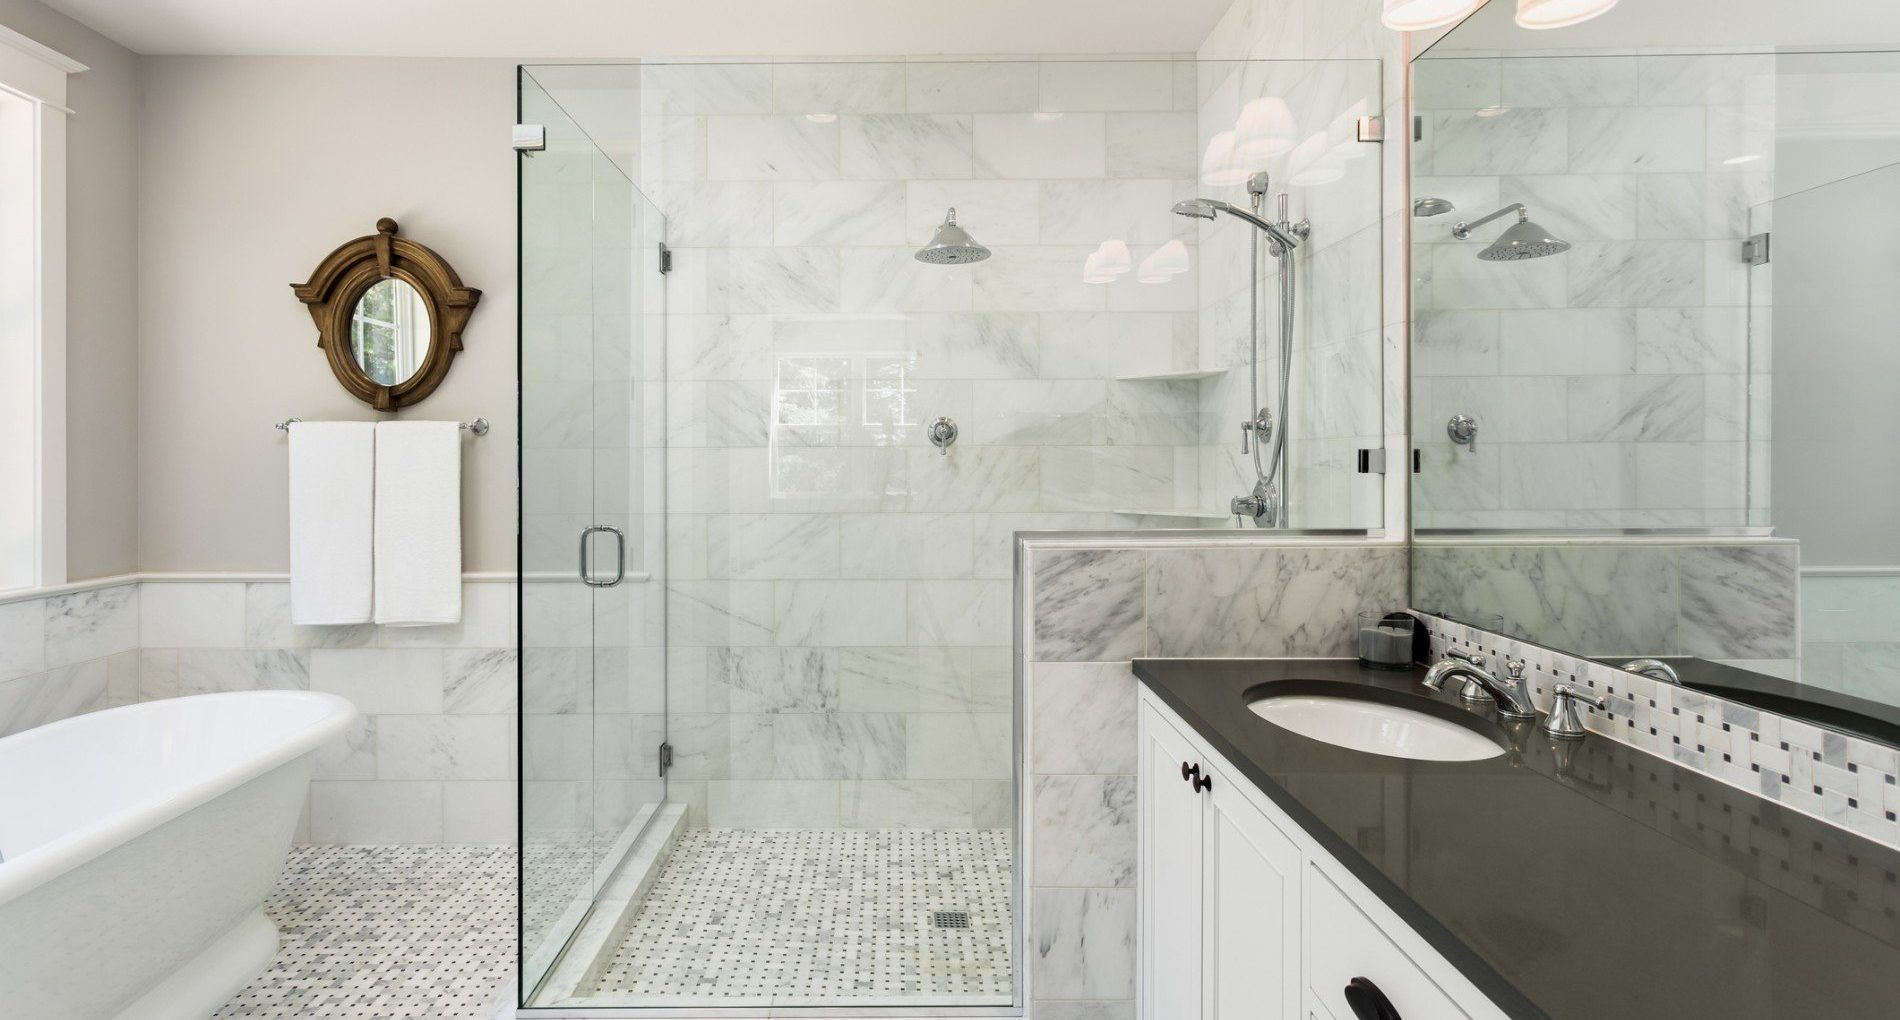 7 Things to Consider for Your Master Bathroom